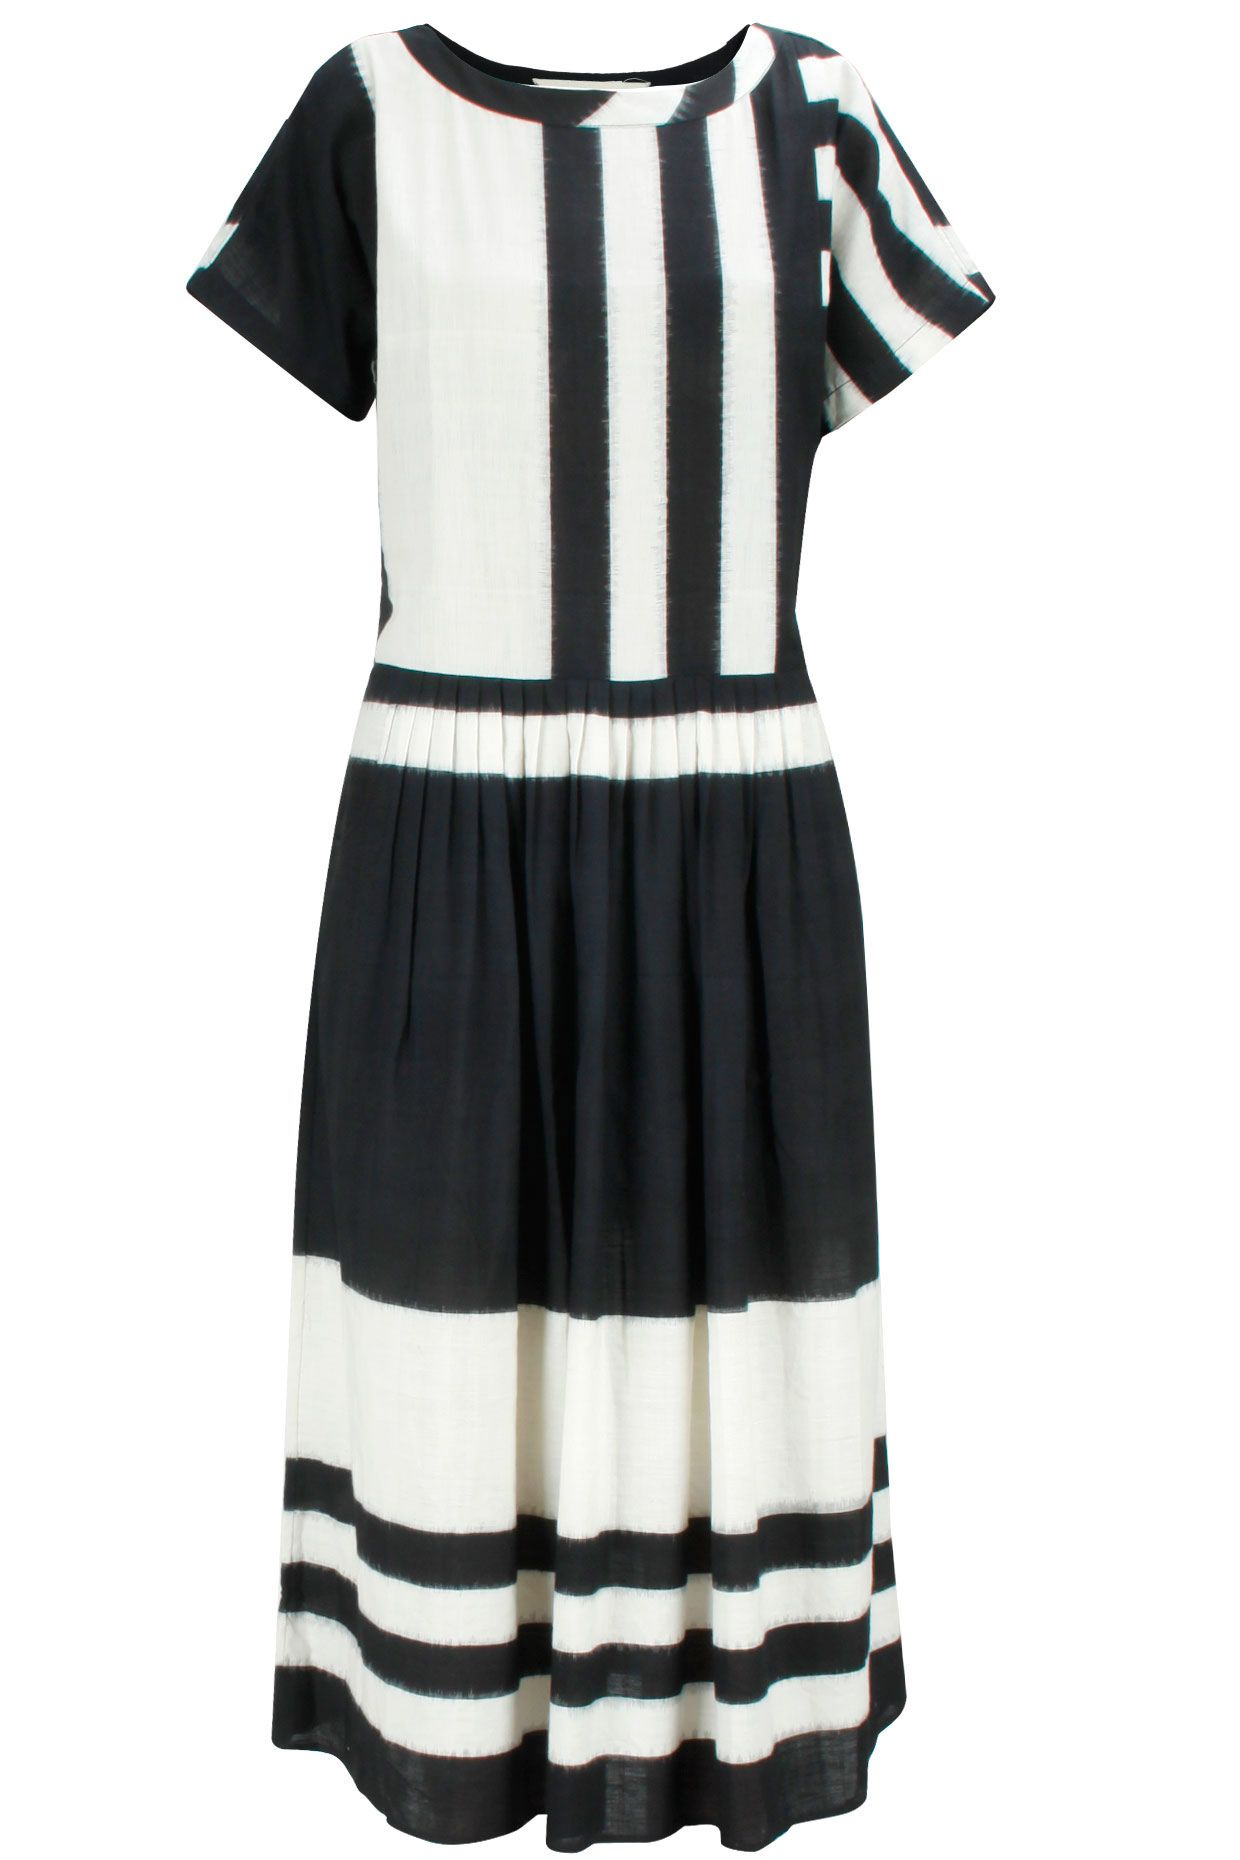 Black and white stripe print dress available only at Pernia's Pop-Up Shop.